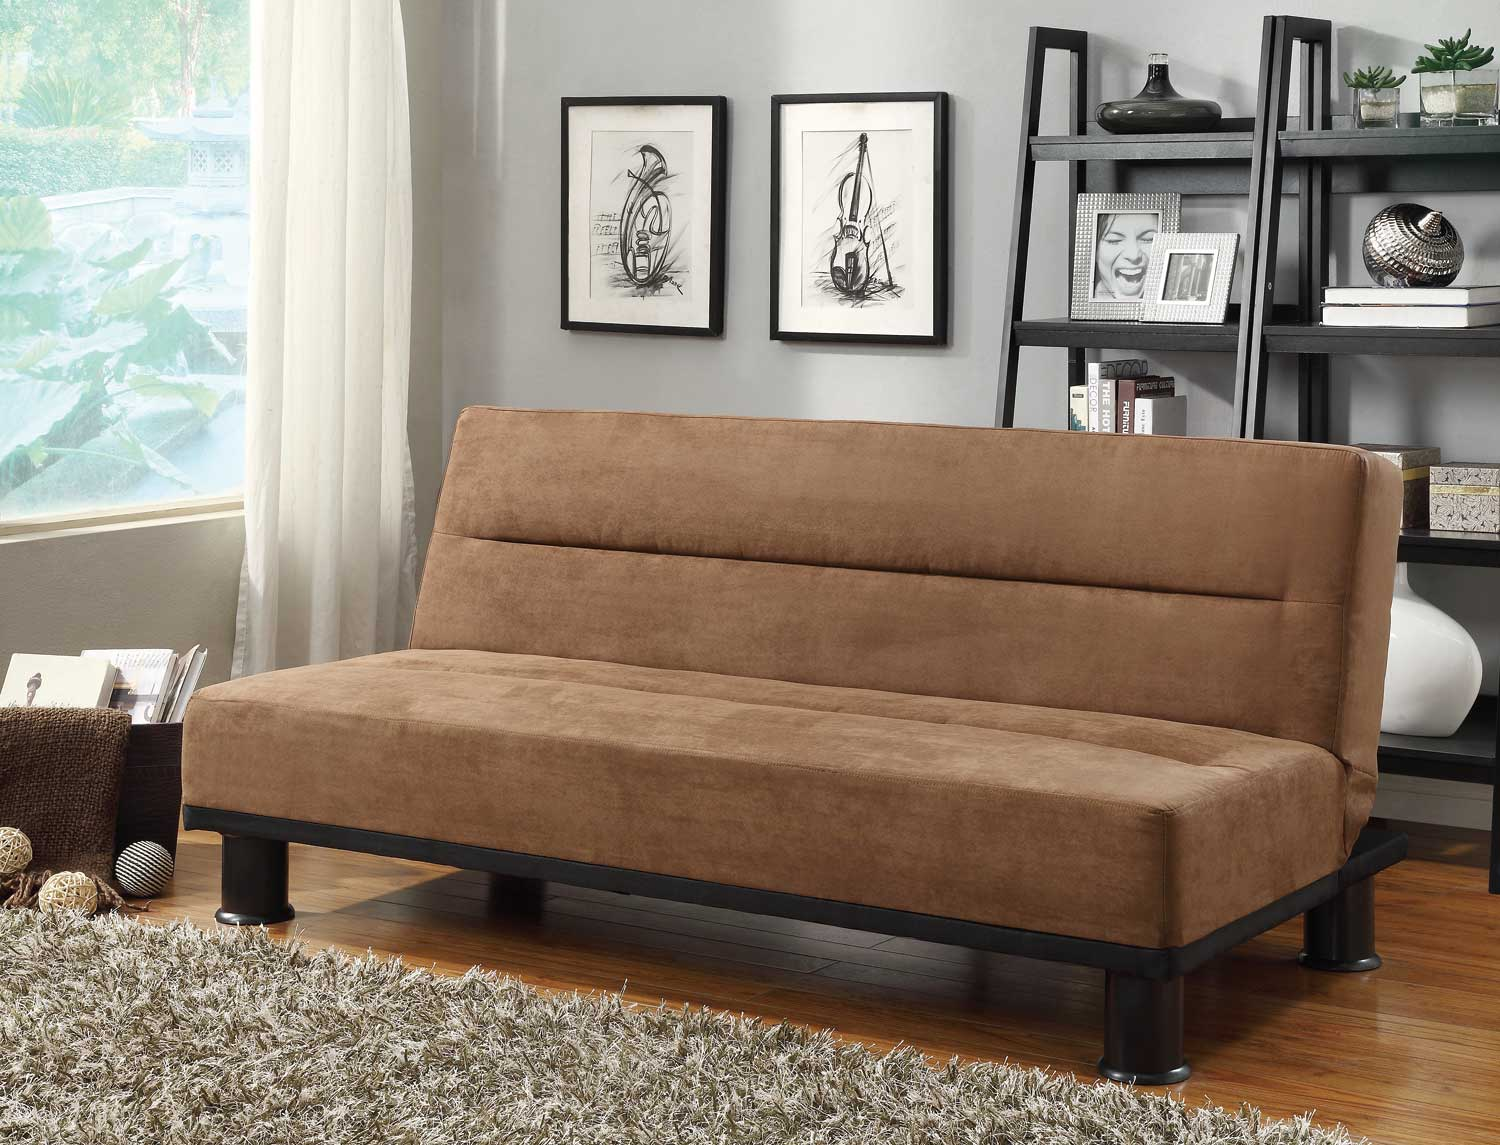 Homelegance Callie Click Clack Sofa Bed Brown Microfiber